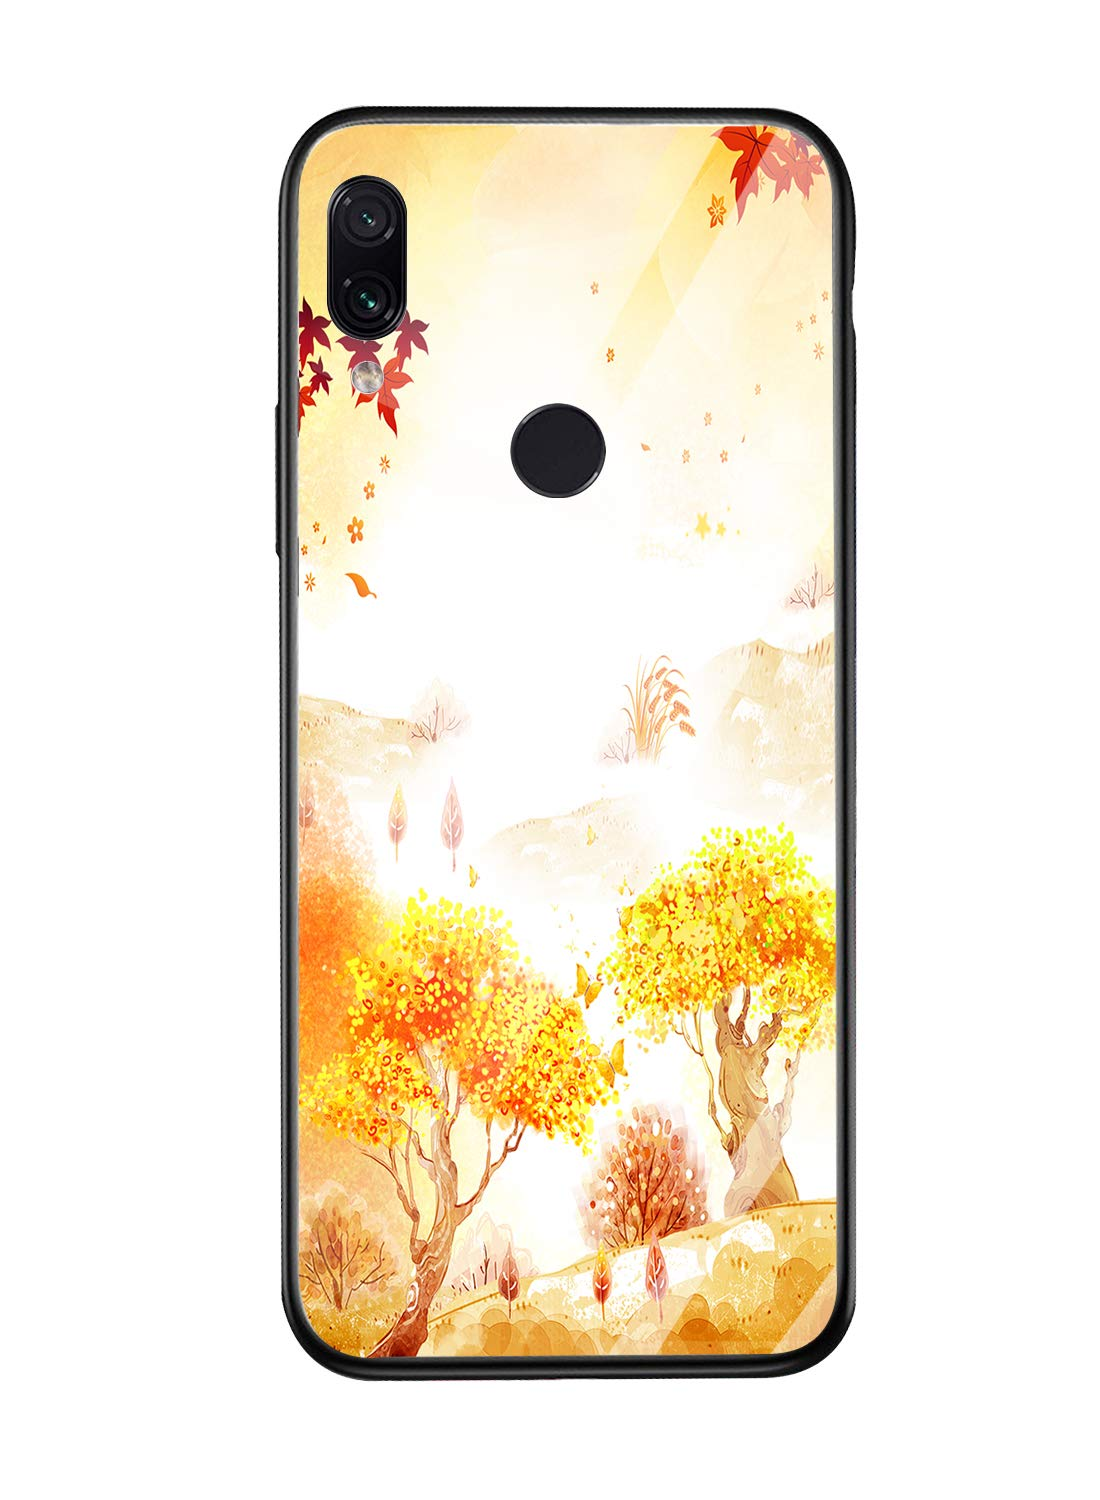 Oihxse Compatible for Xiaomi Mi 8SE Case Glass with Design, Slim Fit Tempered Glass Back Fashion Pattern [Anti-Yellow] [Non-Fade] Cover Shockproof TPU Bumper Skin Shell for Xiaomi Mi 8SE-Yellow3 Oihxse 🍂Slim Fit snugly for Xiaomi Mi 8SE without bulky and loose. 100% compatible with the Qi [Wireless Charging]. Ultra Thin glass back cover will not block [WiFi / GPS / Bluetooth / Signal Reception]. 🍂Stylish autumn series pattern covered with 9H tempered glass to ensure the performance of [Anti-Fade] [Anti-Yellowing], durable for use and adds more sleek look even fashion charming. Suitable for girls, boys, women and men. 🍁Soft TPU bumper with anti-slip design on both sides, compliment with pretty autumn series hard plastic panel plus 9H tempered glass back shell, not only can withstand shocks, impacts, scratches, and bumps, but also provide great in-hand feeling and grip. 1